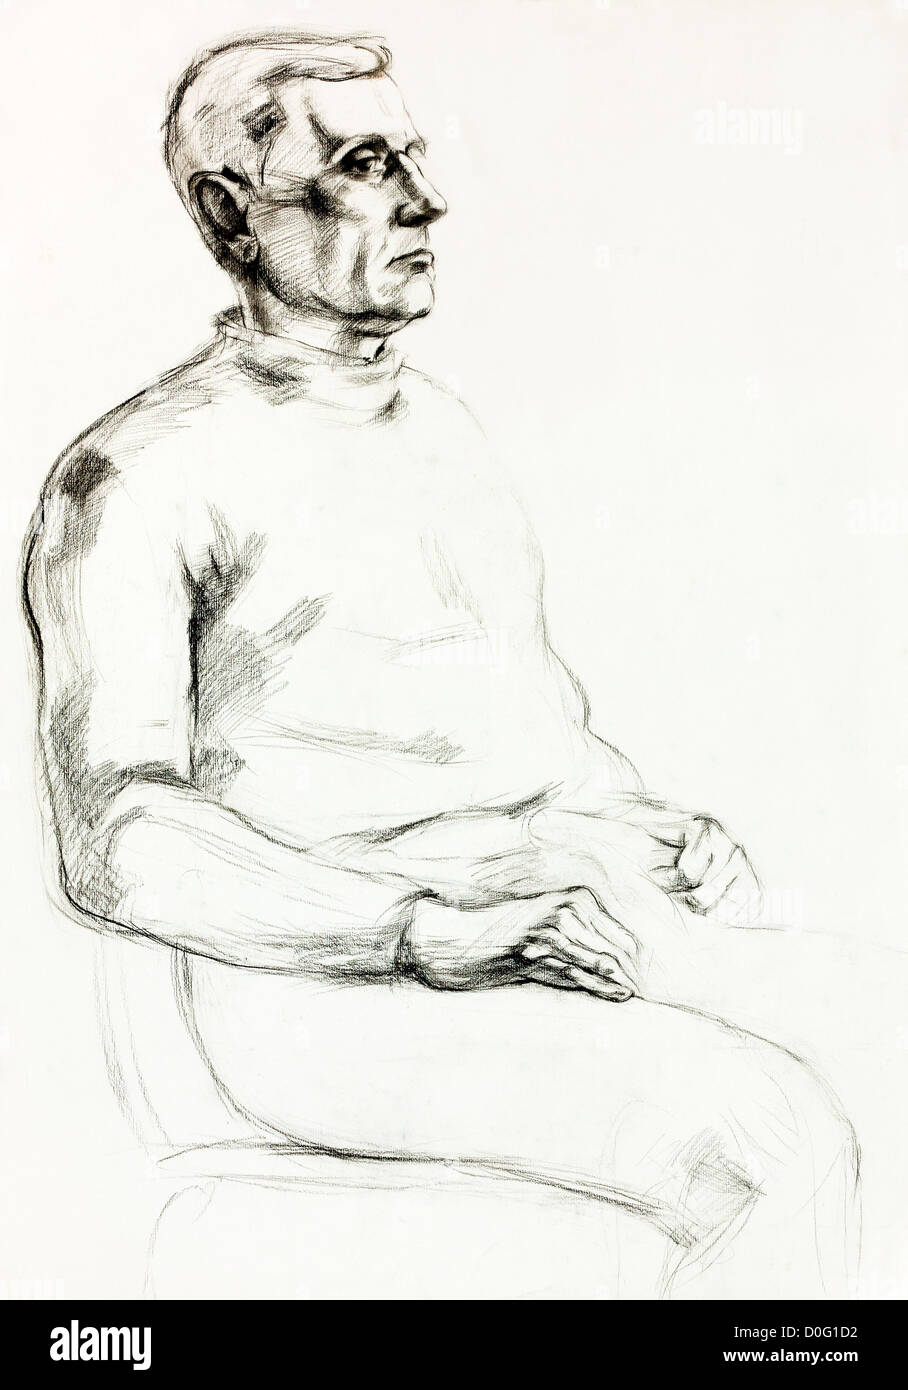 Man sitting in chair drawing - Original Pencil Or Drawing Charcoal And Hand Drawn Painting Or Working Sketch Of A Man Sitting In A Chair Free Composition